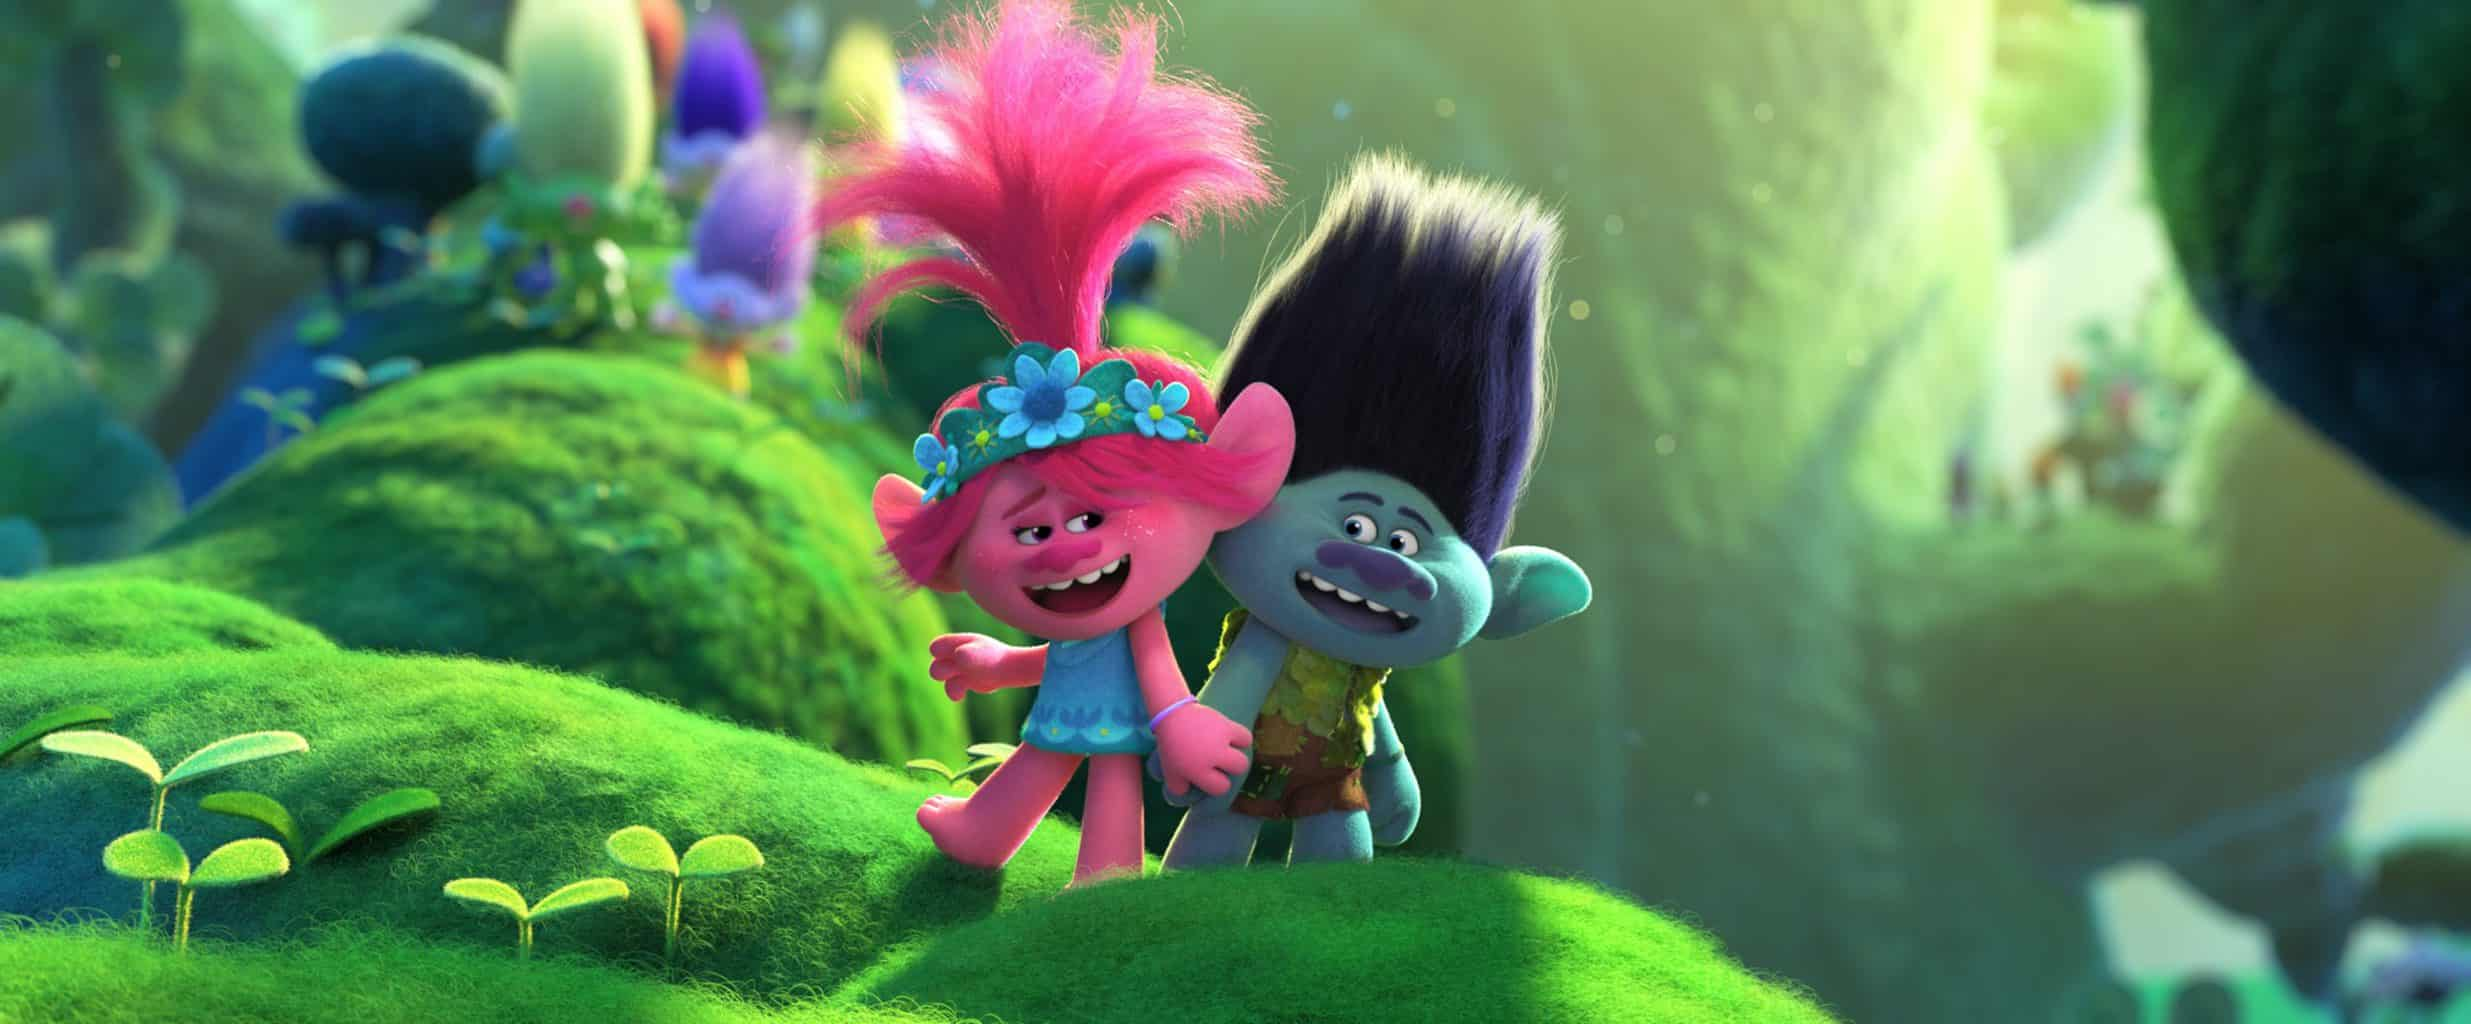 Trolls World Tour debuts at Number 1 on the Official Film Chart